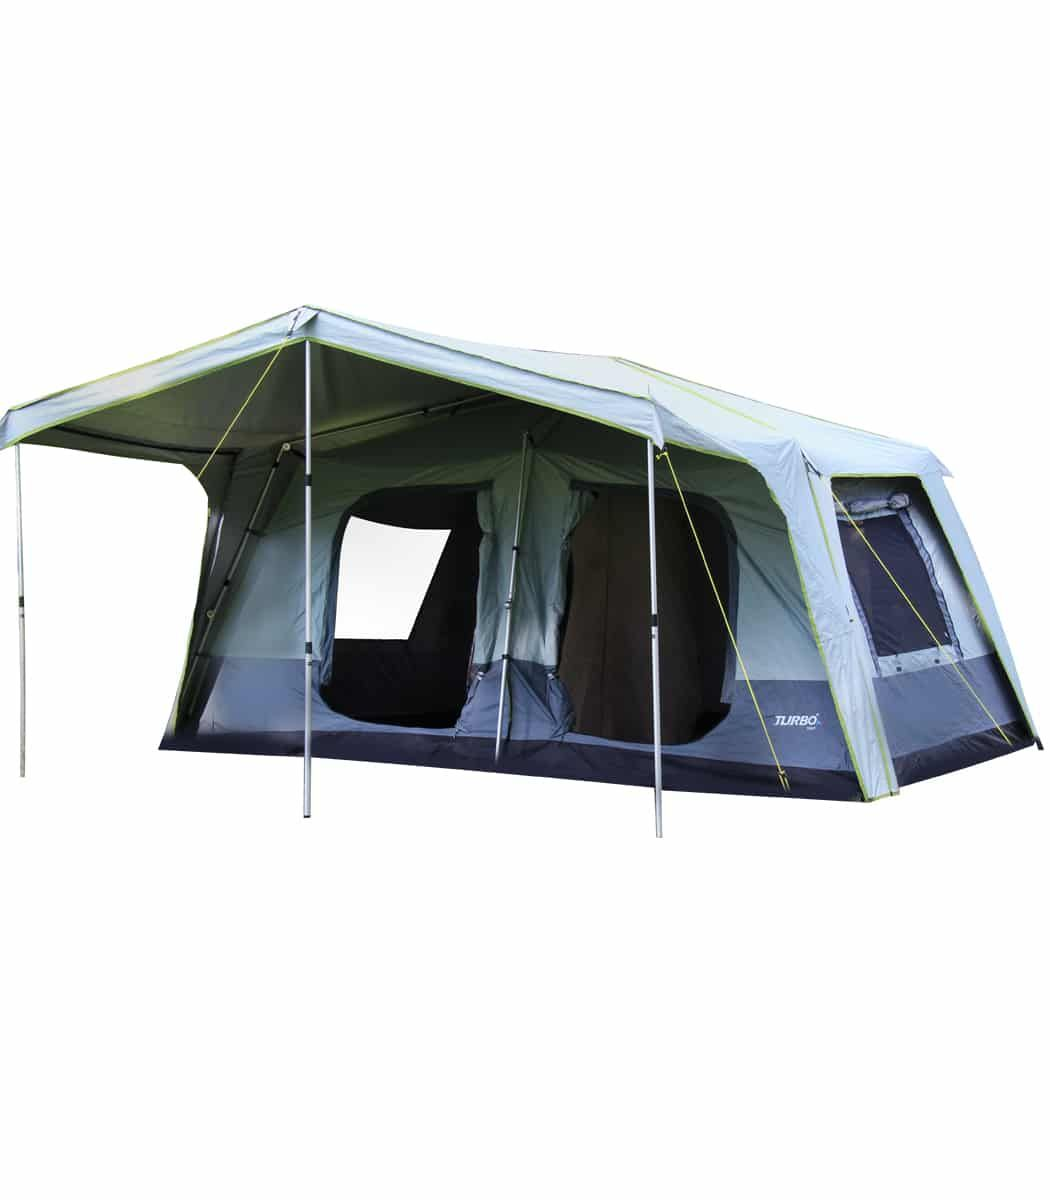 Pin By Kobituby On אוהלים In 2020 Outdoor Gear Tent Outdoor